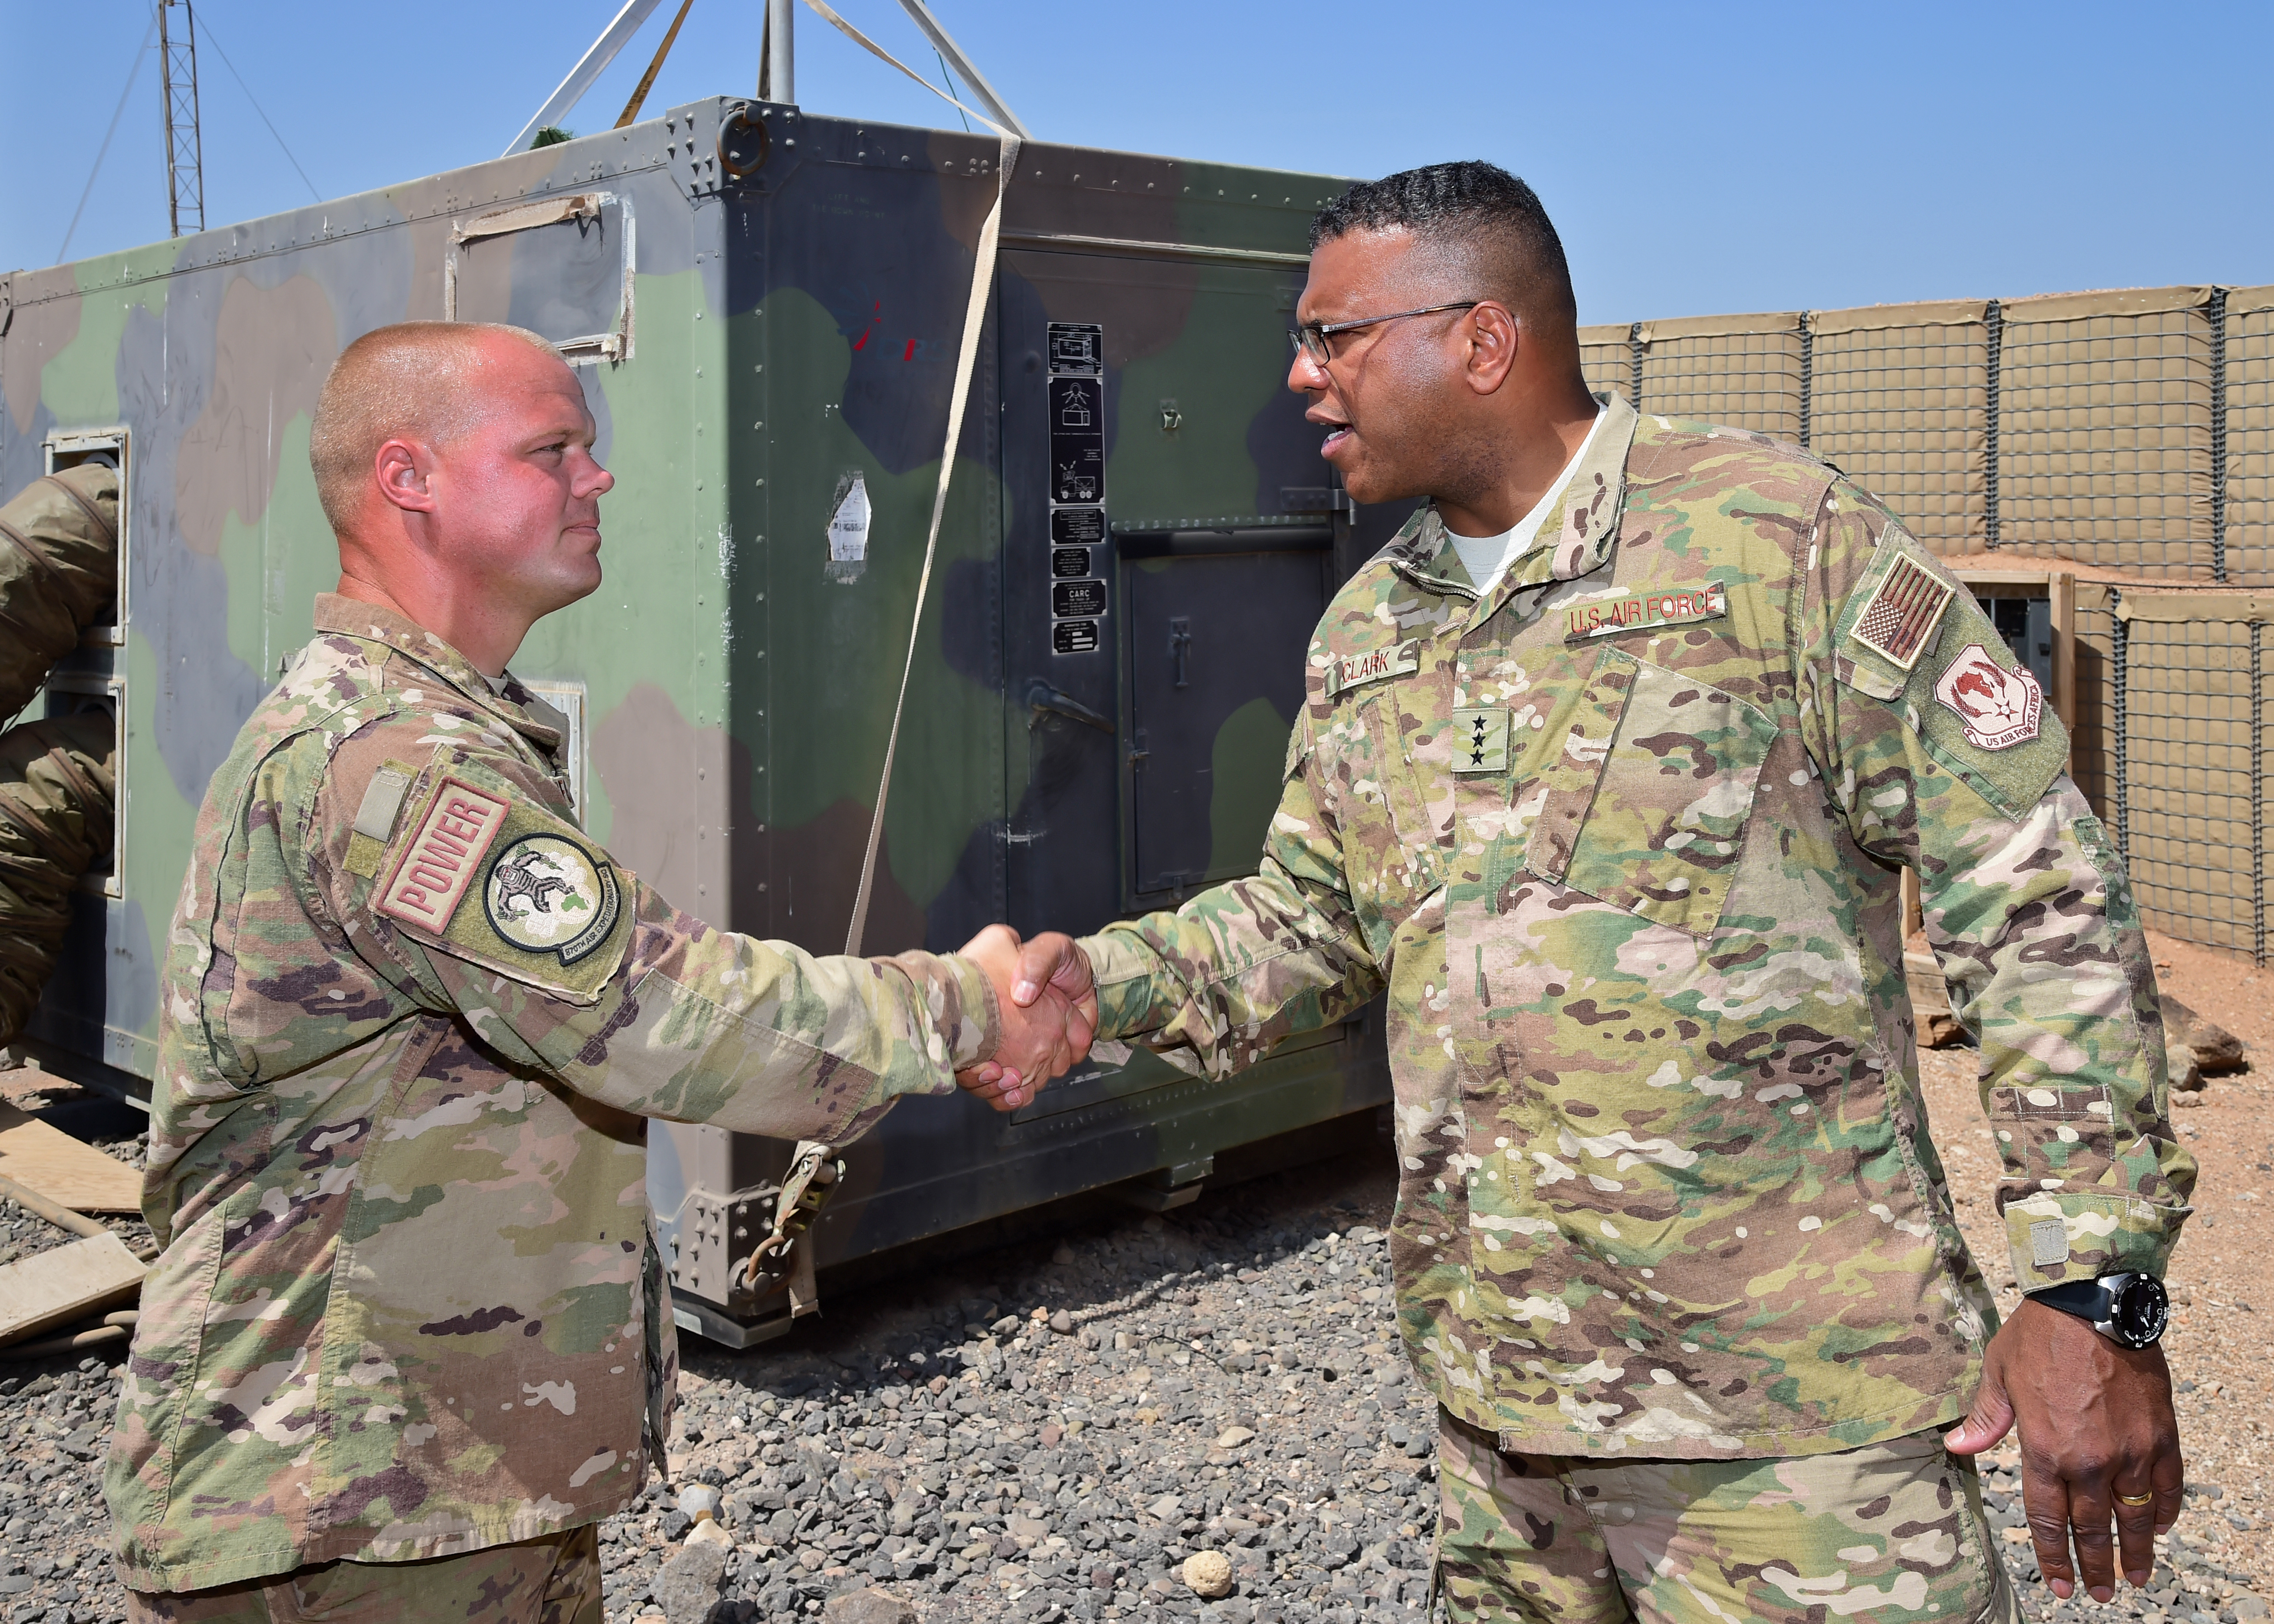 Lt. Gen. Richard Clark, commander of the 3rd Air Force and 17th Expeditionary Air Force, meets Staff Sgt. Daniel Buford, electrical power production specialist for the 870th Air Expeditionary Squadron while visiting an airfield in southern Djibouti, April 12, 2017 to engage with Airman deployed to the installation and surrounding duty stations. The visit allowed Clark and accompanying leadership to gain a better understanding of the Air Force mission in East Africa, and express their appreciation to the many U.S. Airmen deployed throughout the region. (U.S. Air National Guard photo by Master Sgt. Paul Gorman)